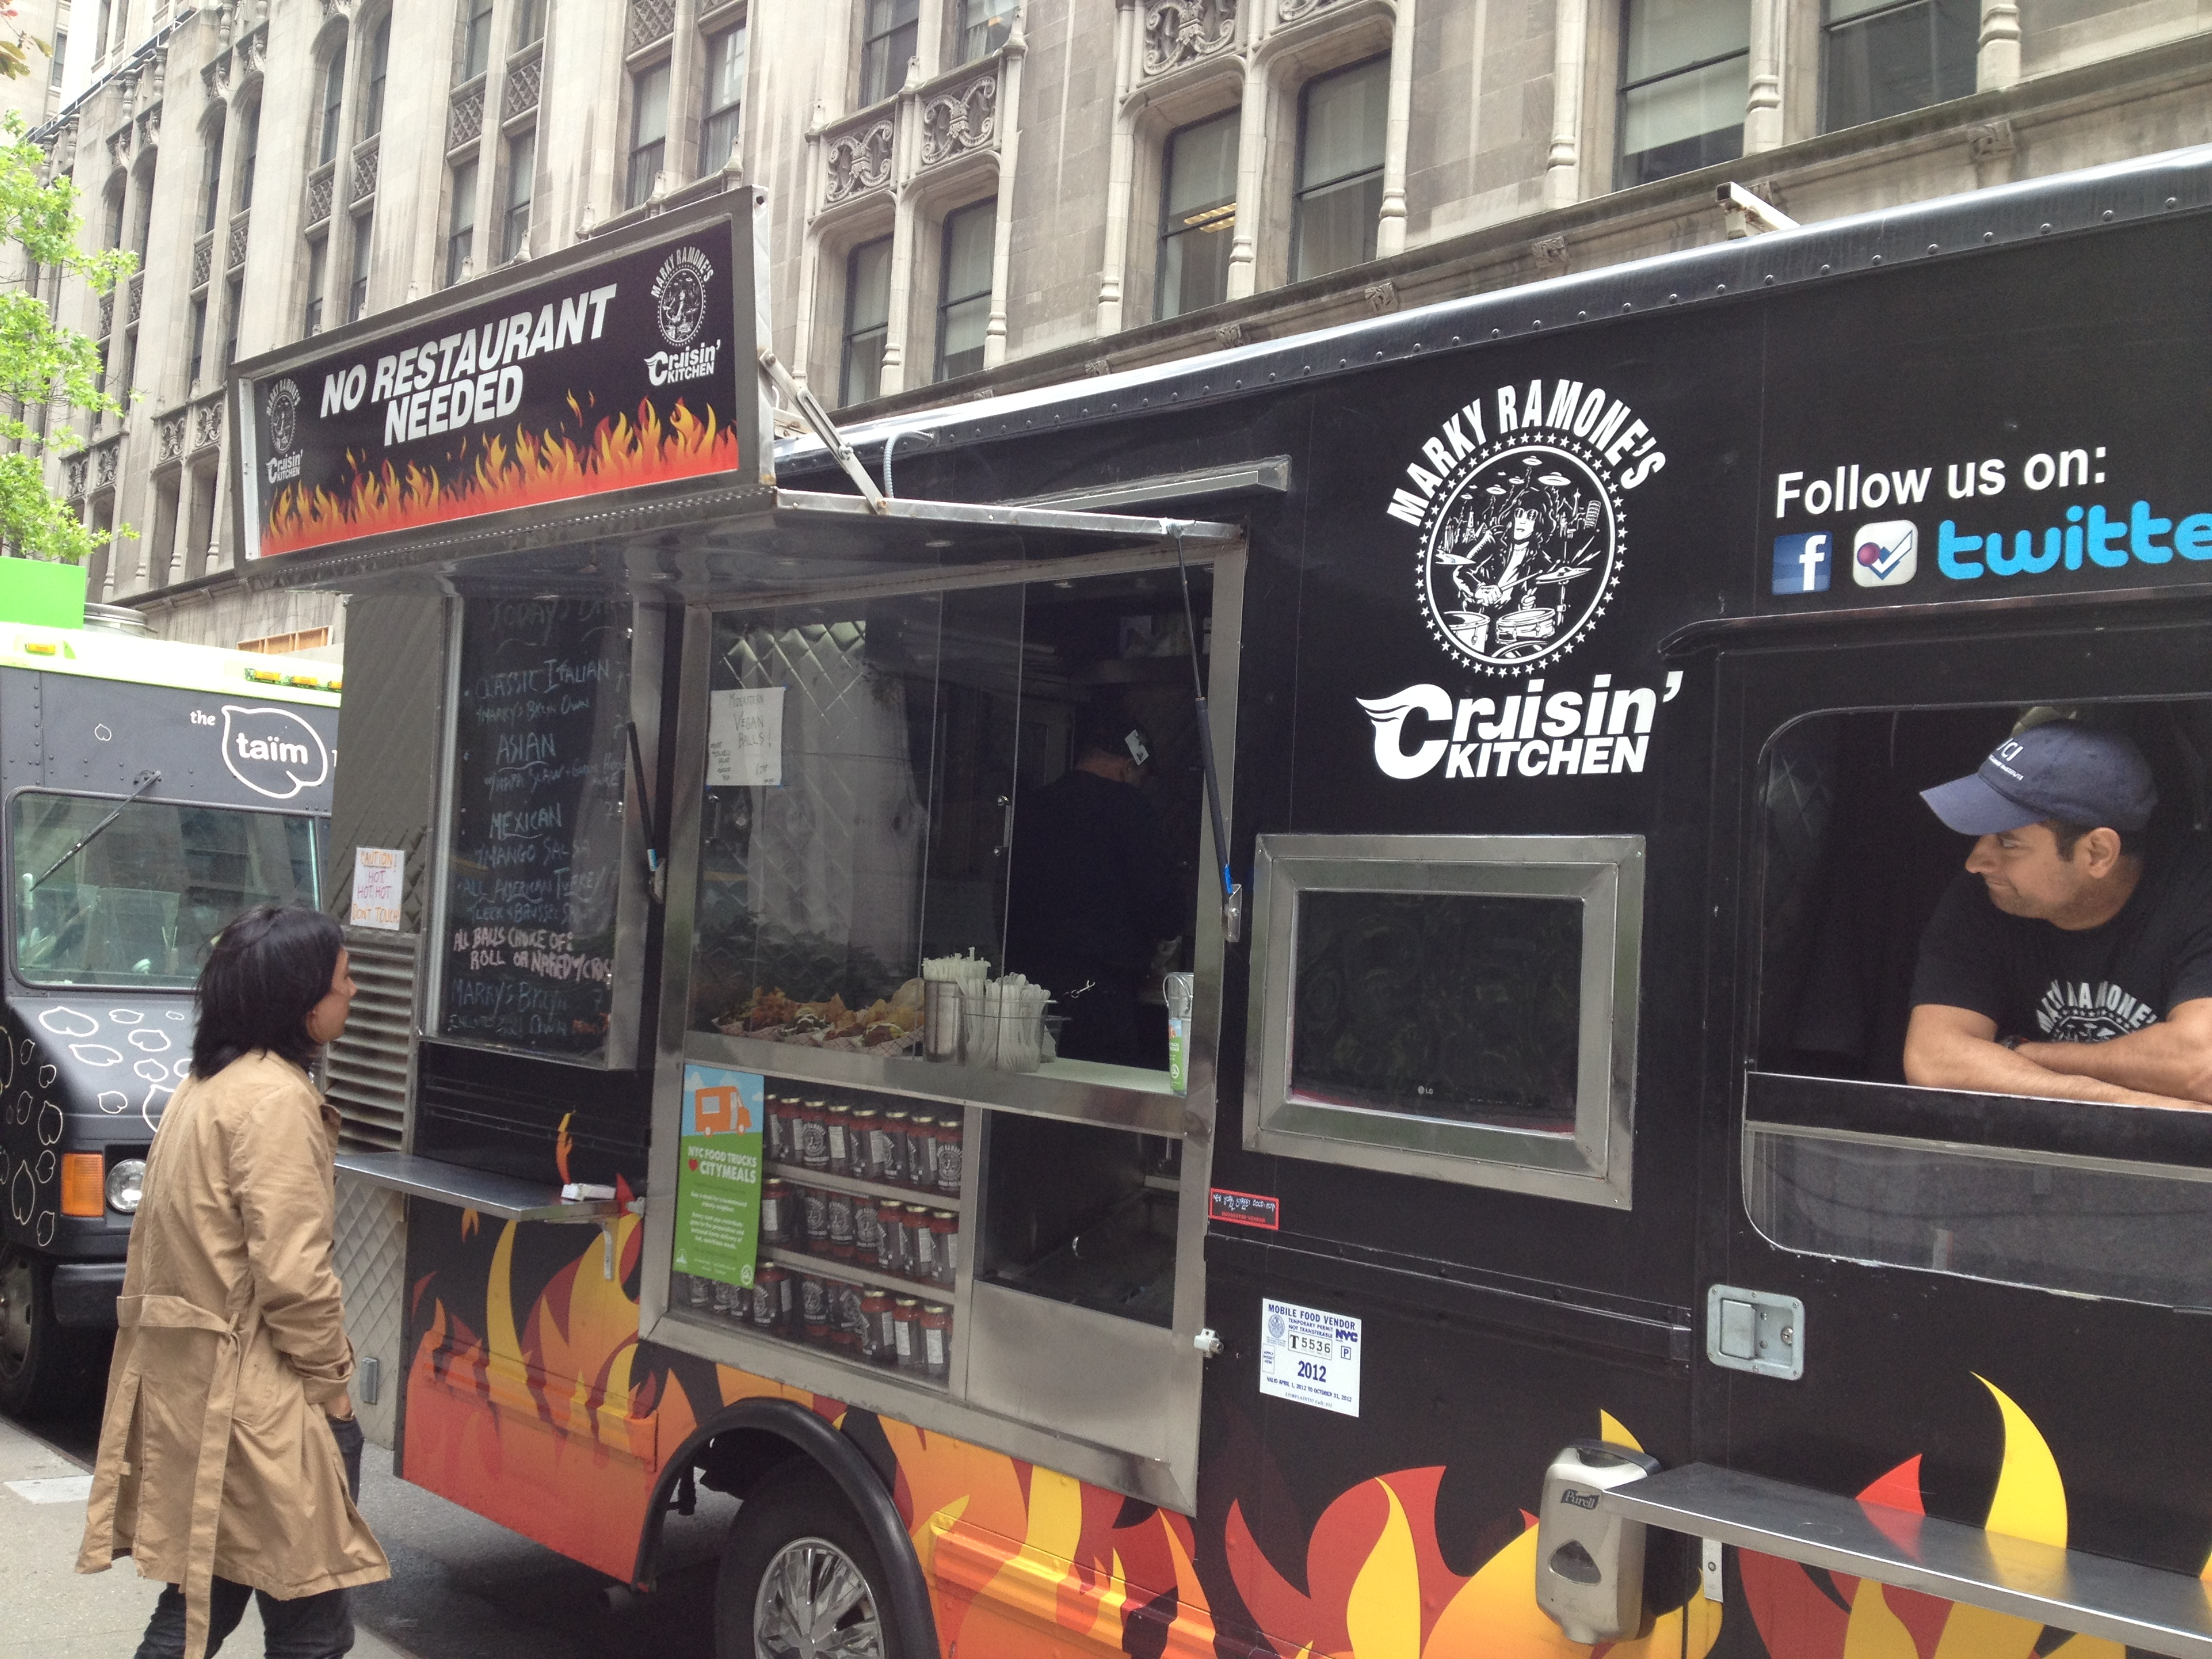 More New Food Trucks Hitting The Streets Every Day Hallelujah Truck